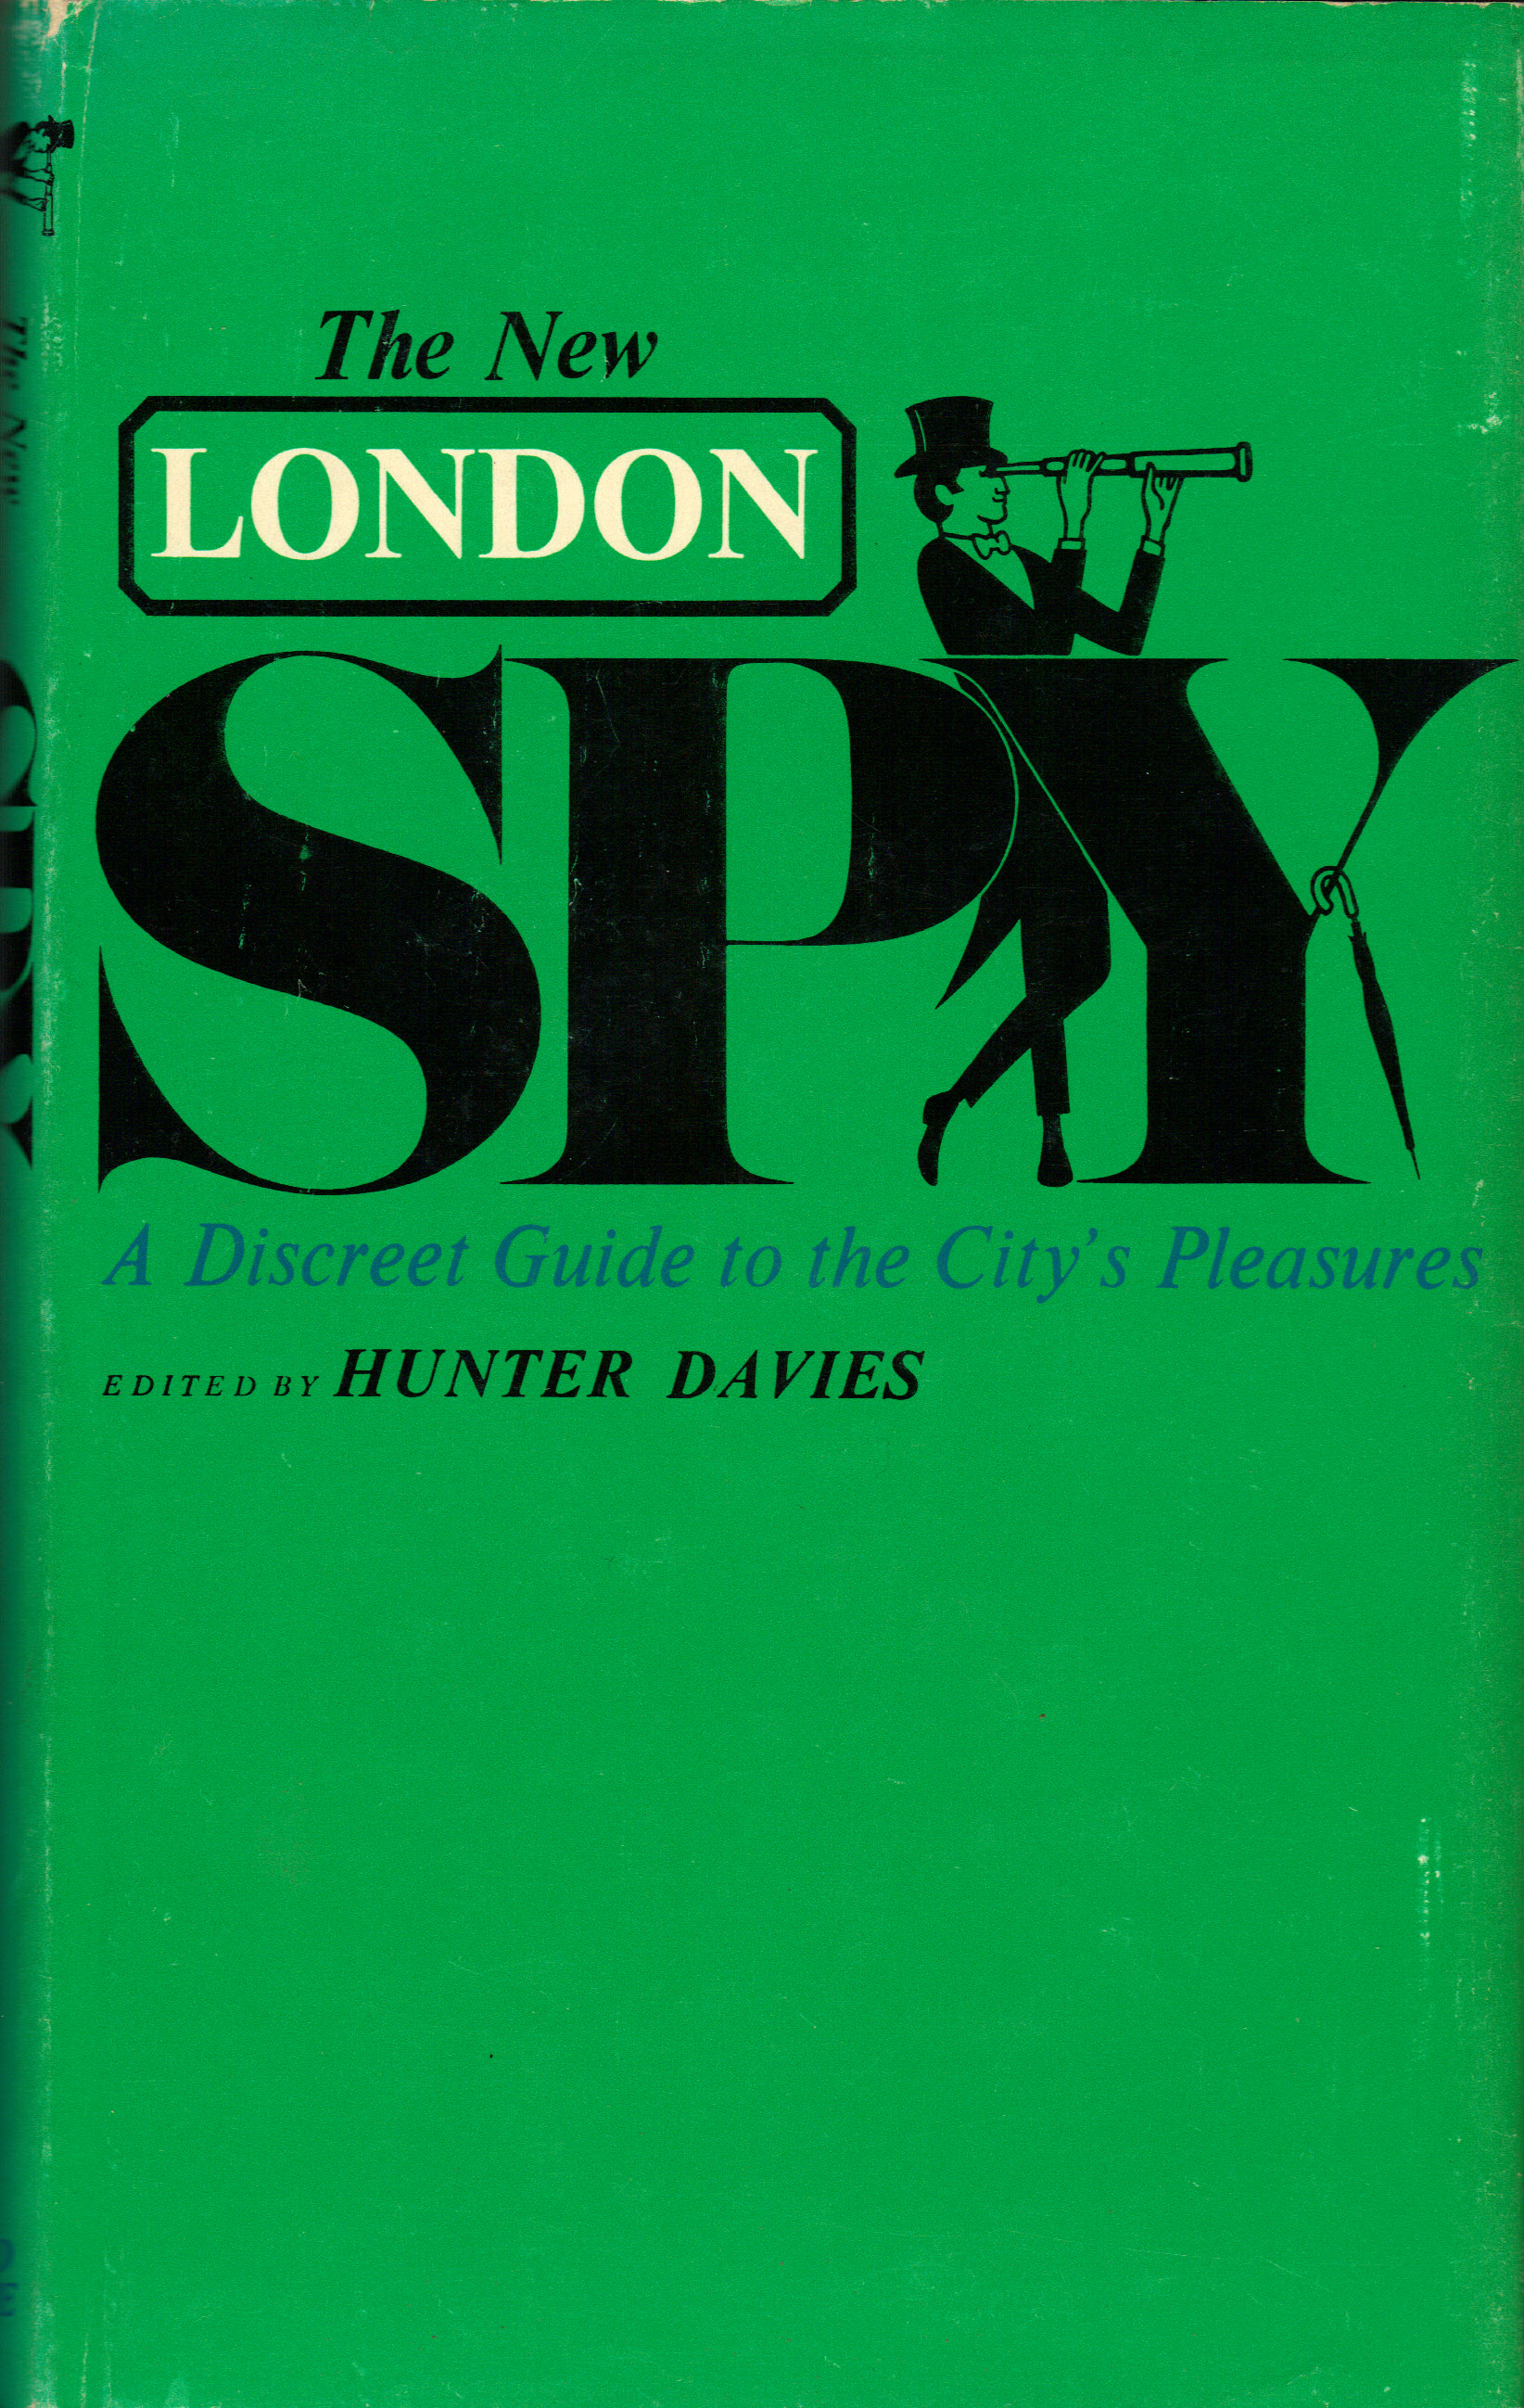 Image for THE NEW LONDON SPY ~A Discreet Guide to the City's Pleasures